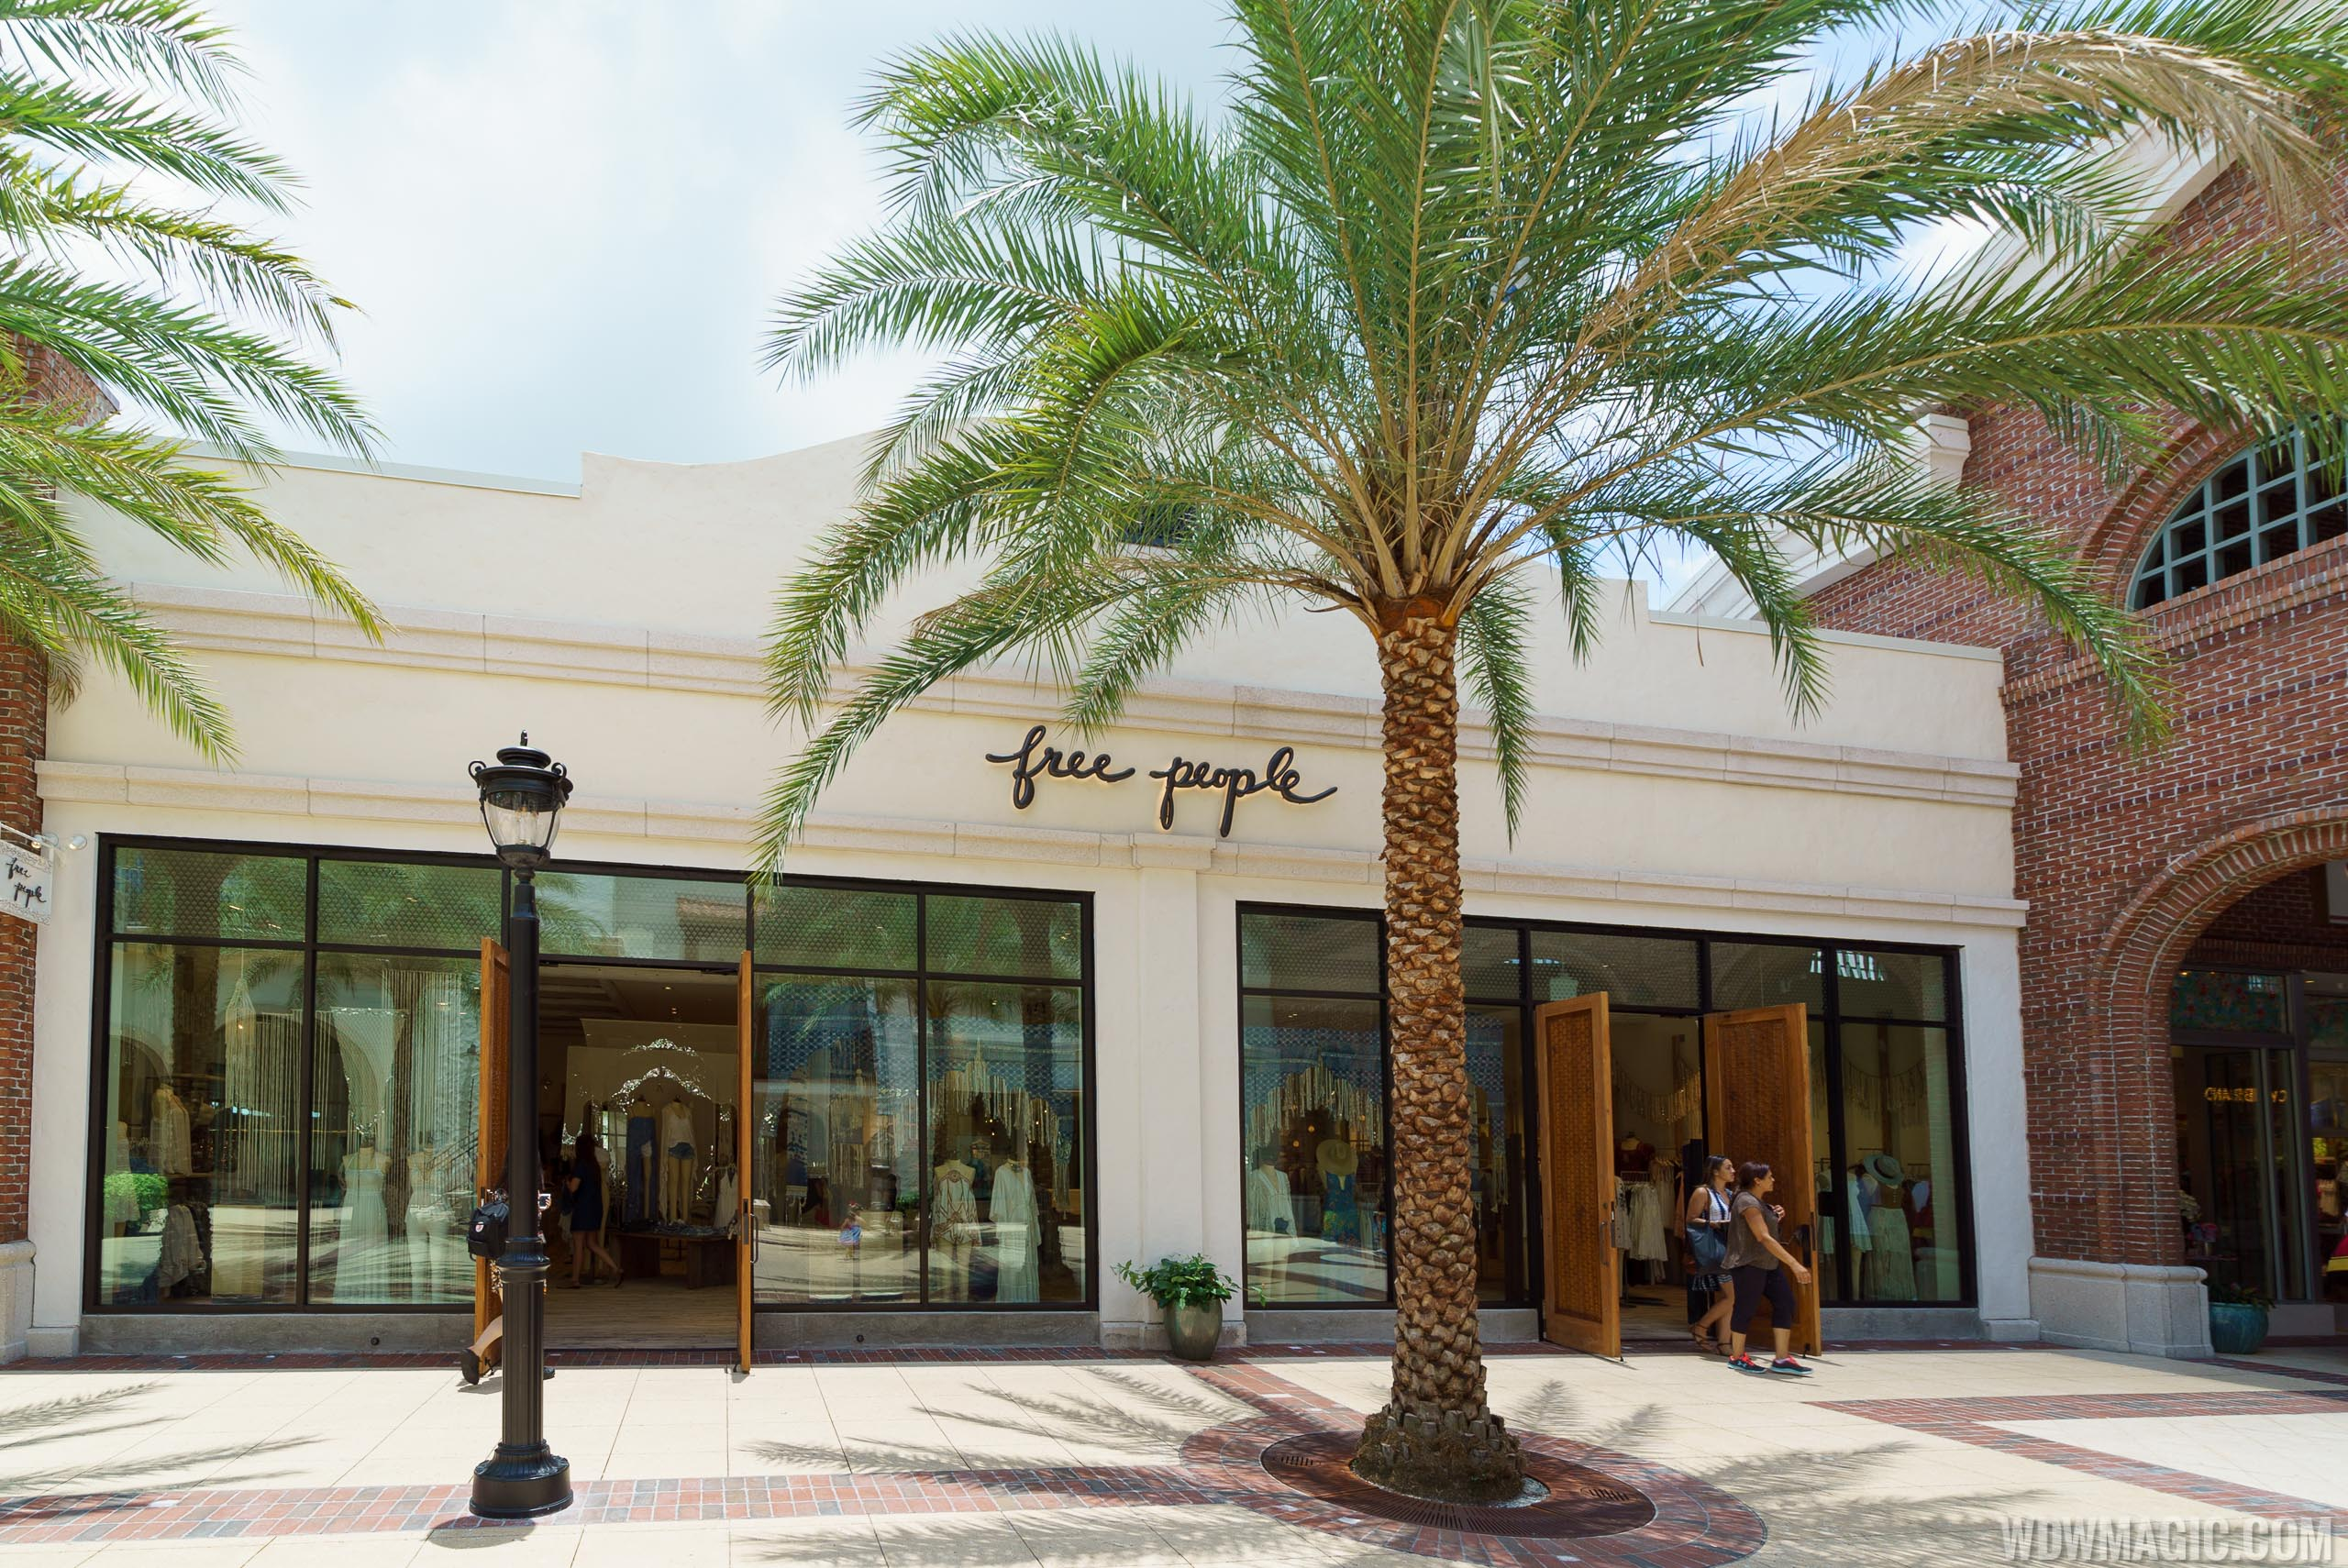 Free People overview